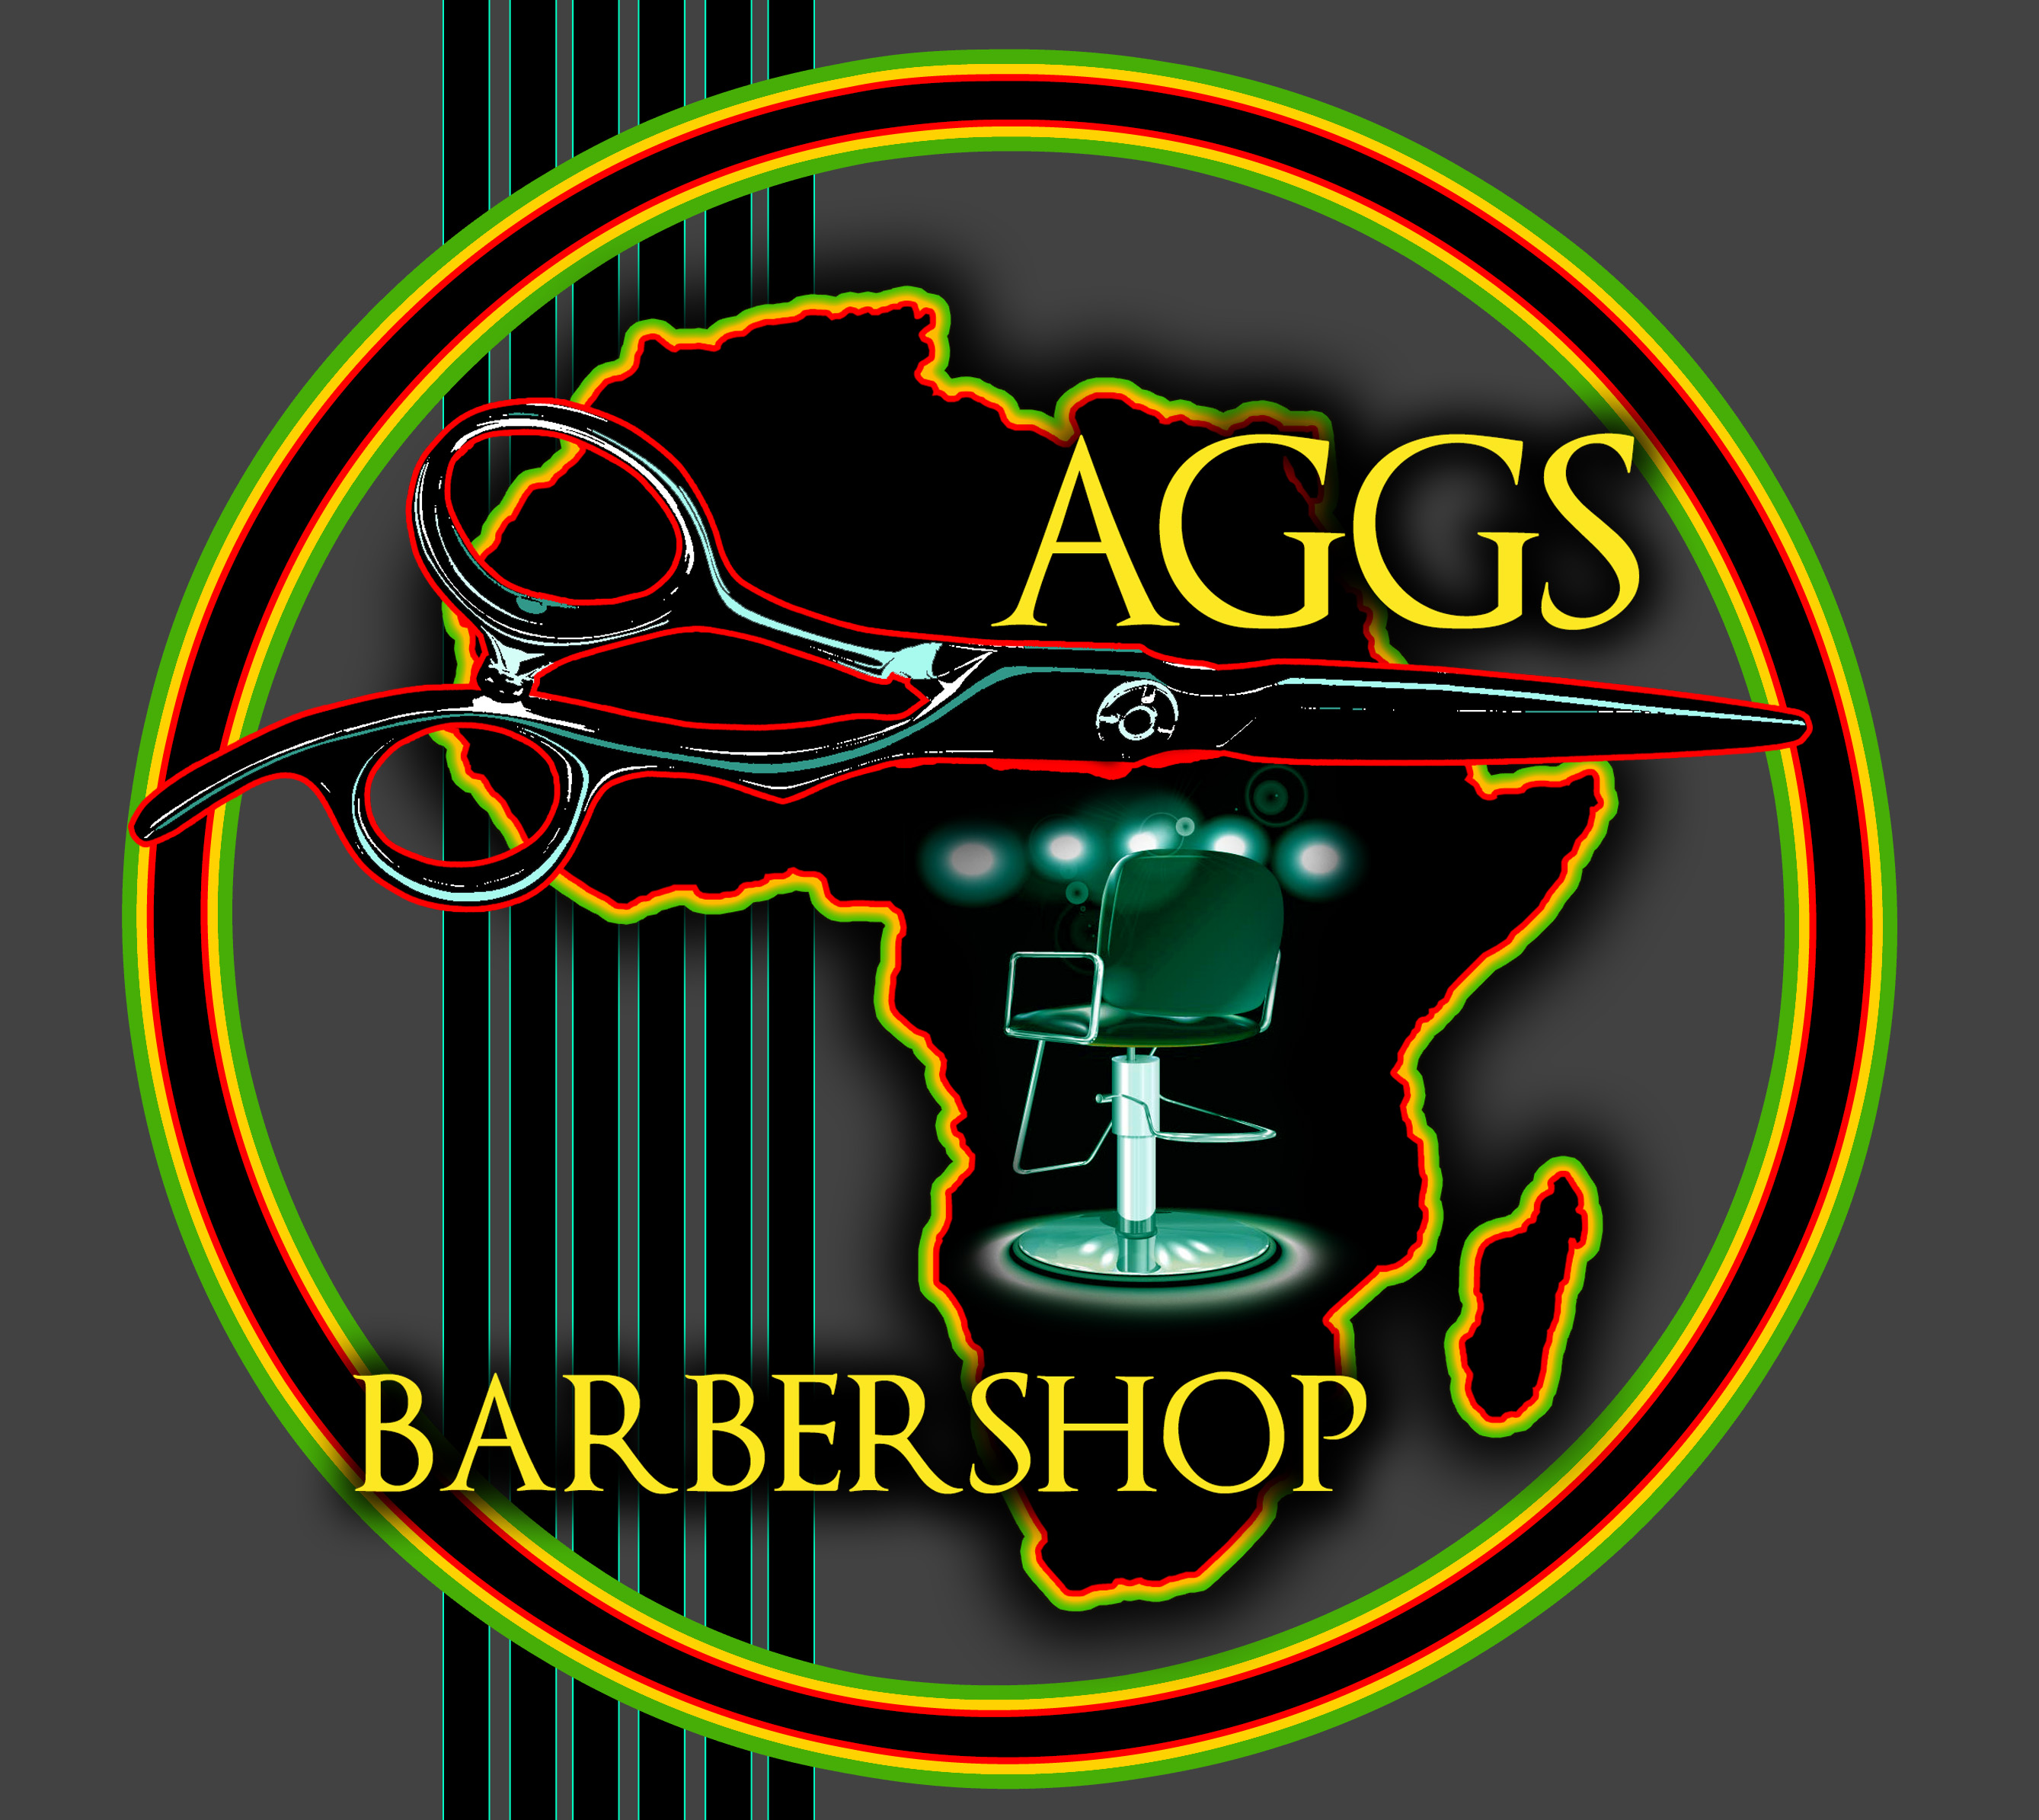 AGGS BARBER SHOP LOGO2.jpg